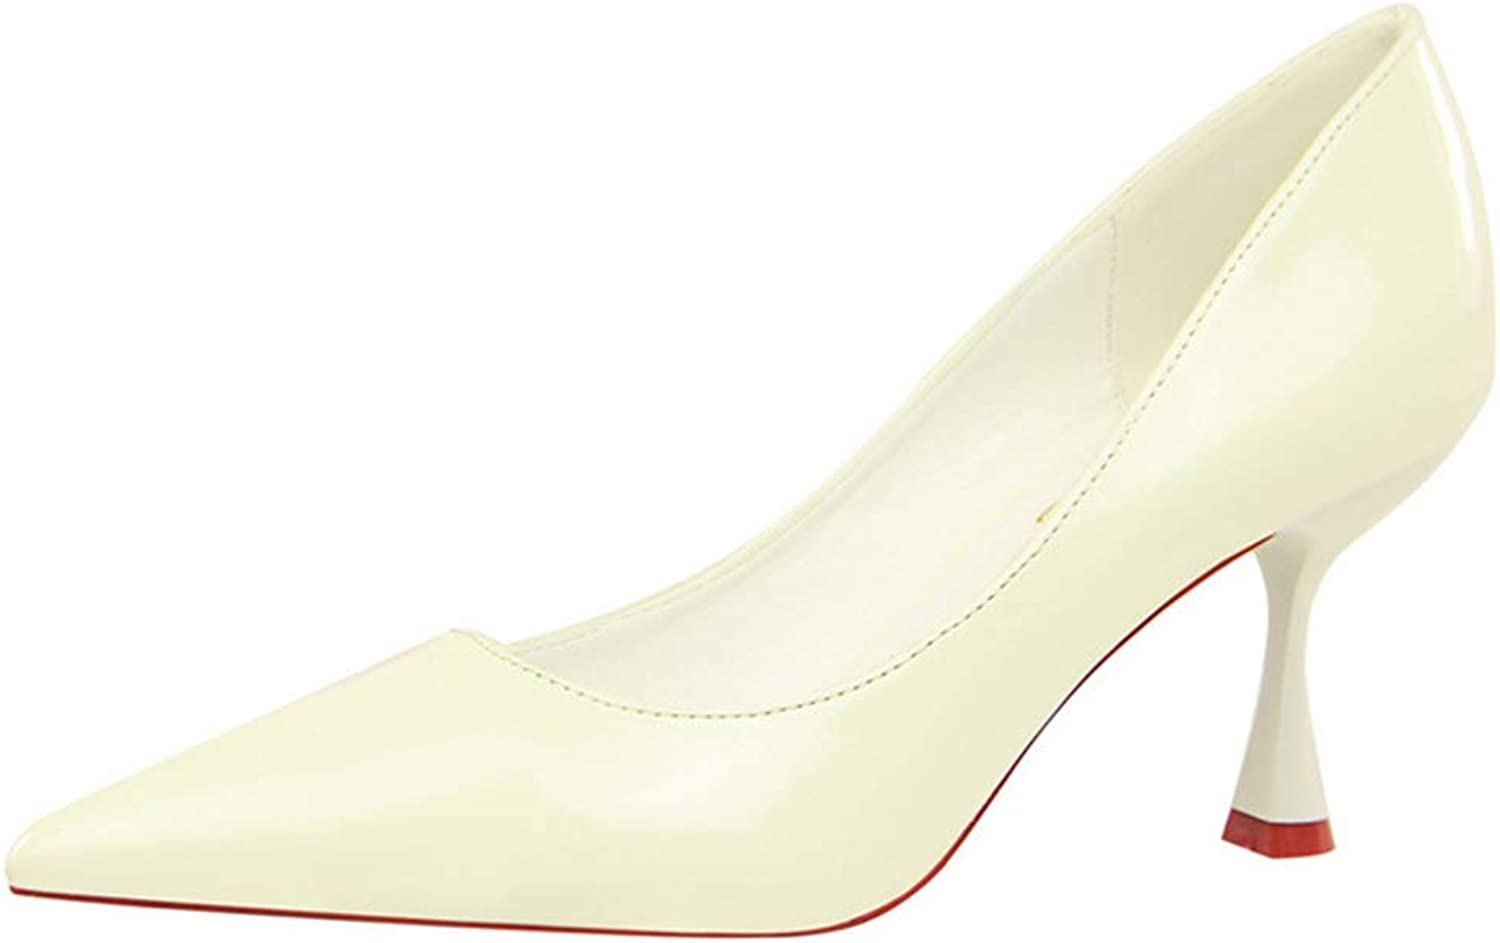 Owen Moll Women Pumps, Fashion Patent Leather High Heels Pointed Toe OL shoes 2.95 Inch